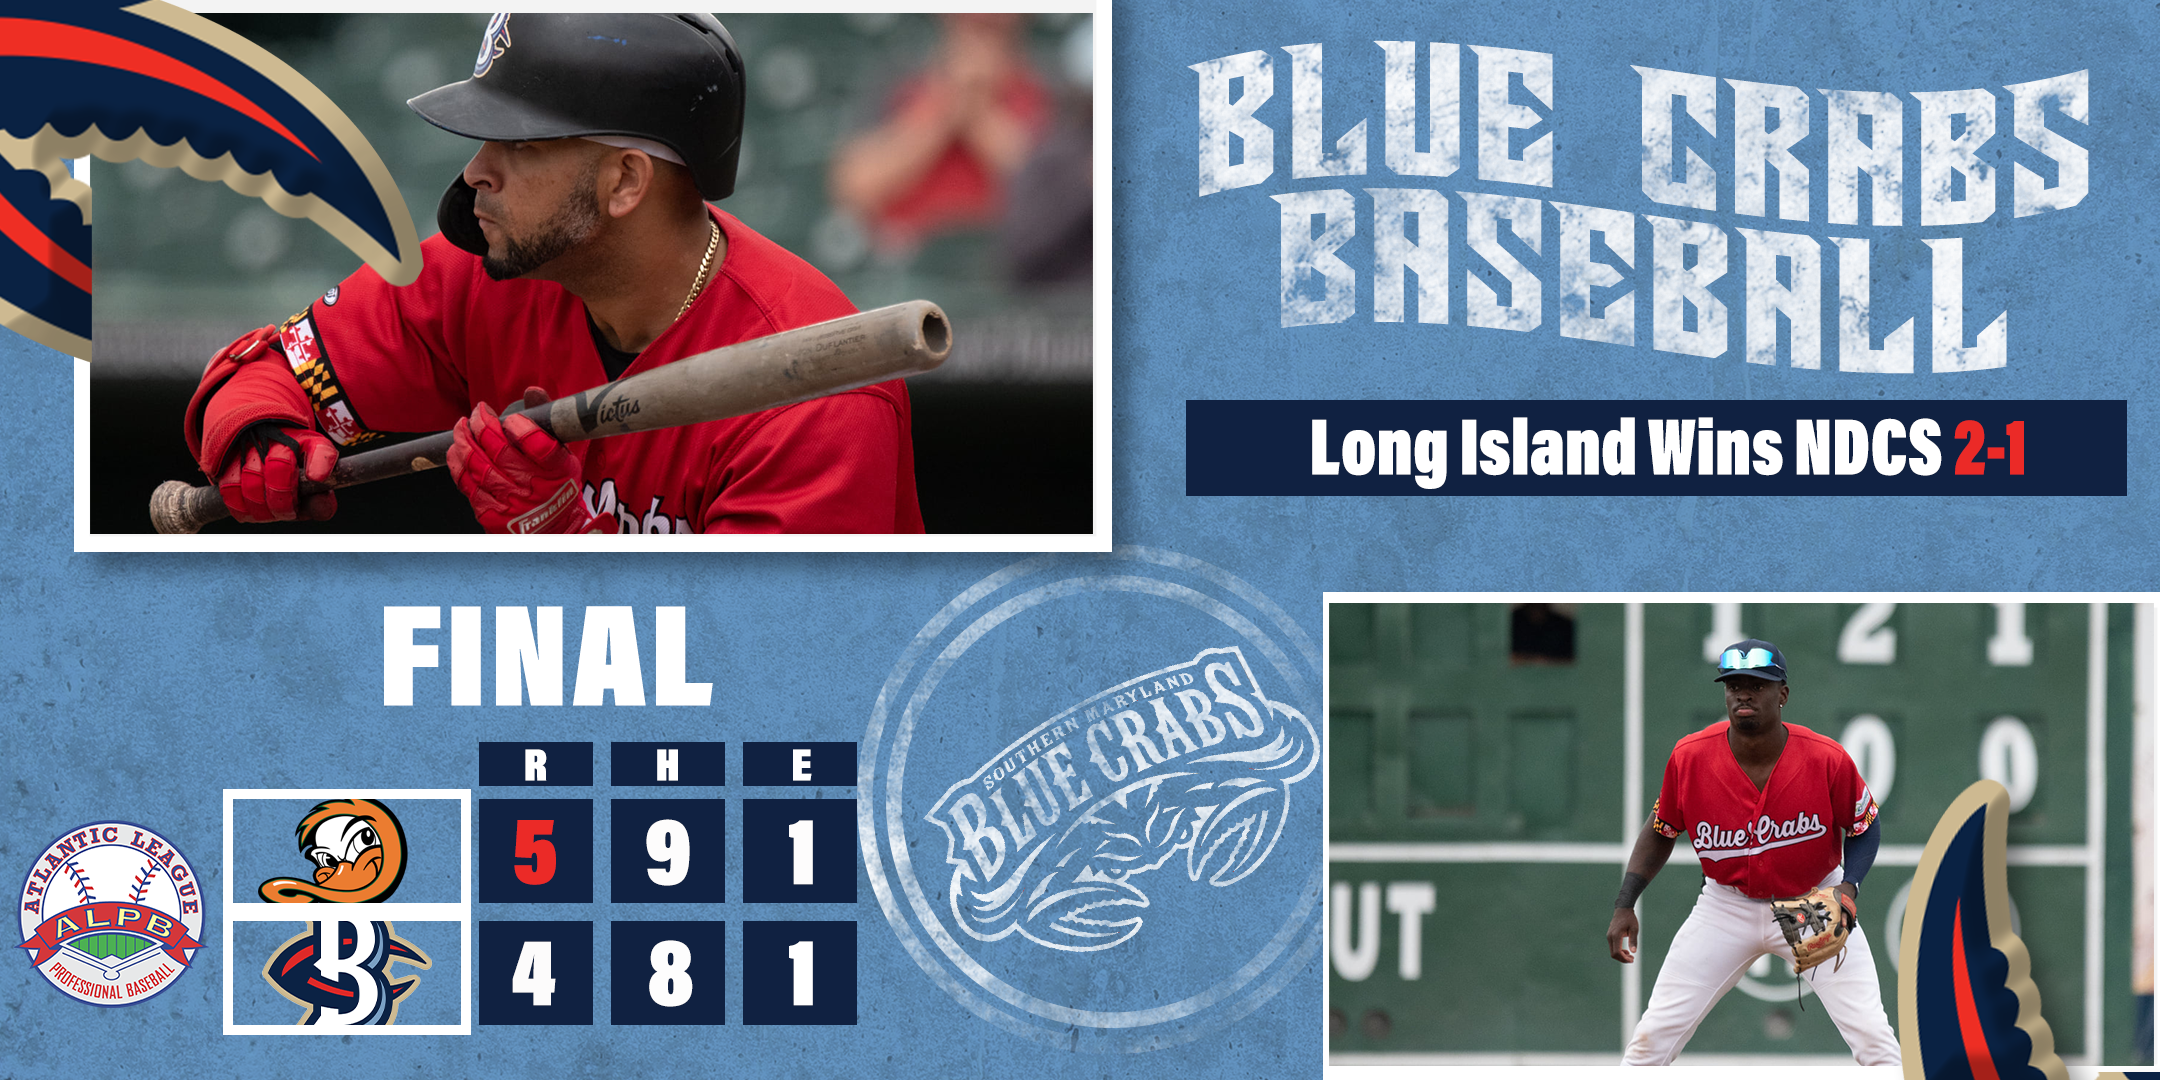 Crabs Knocked Out of Playoffs in Heartbreaking Los